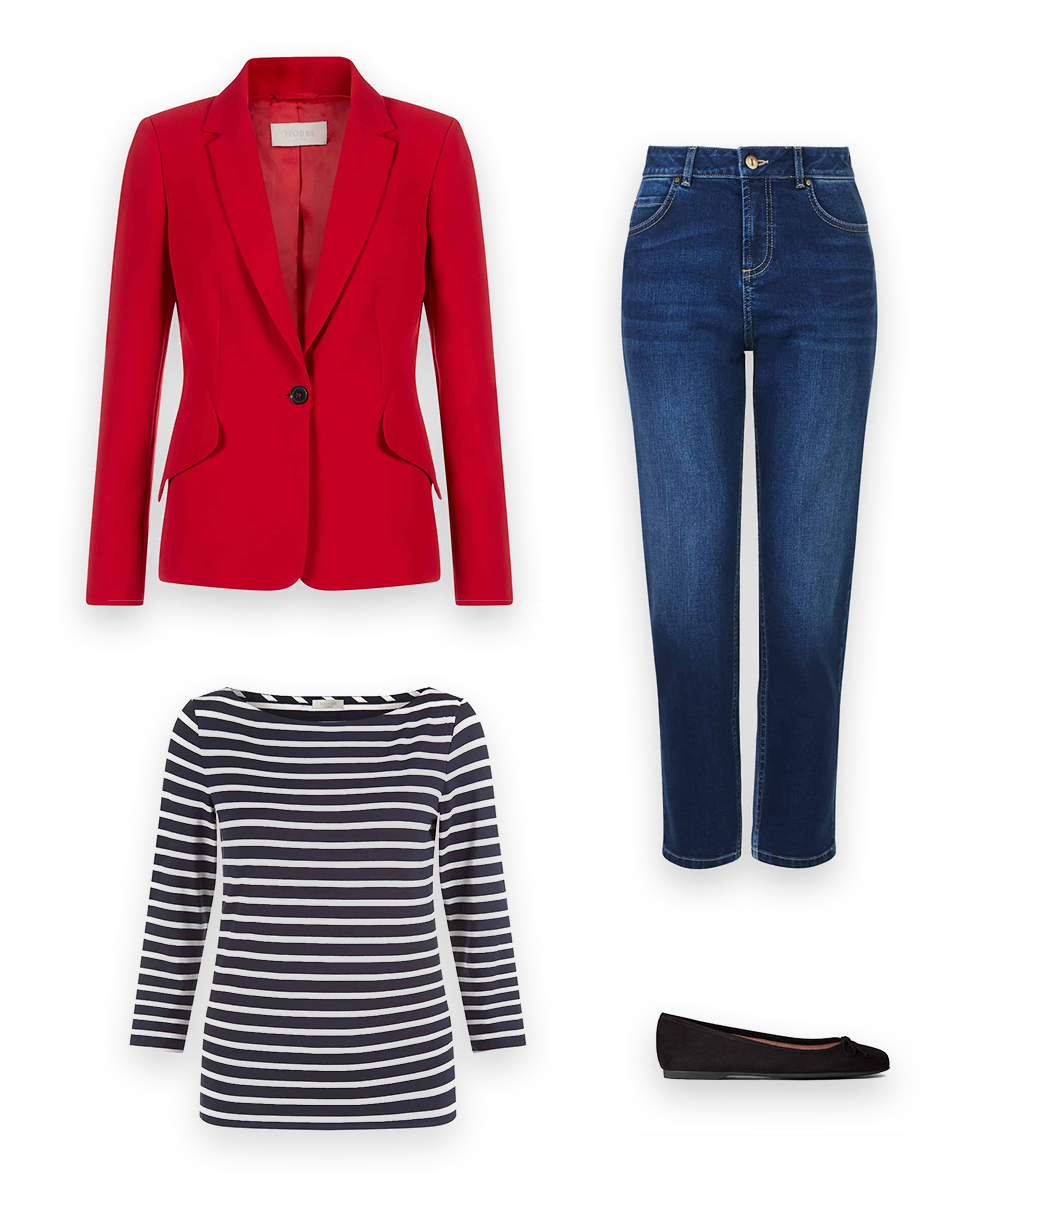 A versatile blazer is a invaluable wardrobe addition, a Hobbs red jackets styled with a classic navy blue and white breton top with blue denim jealsn and dark blue leather flat shoes